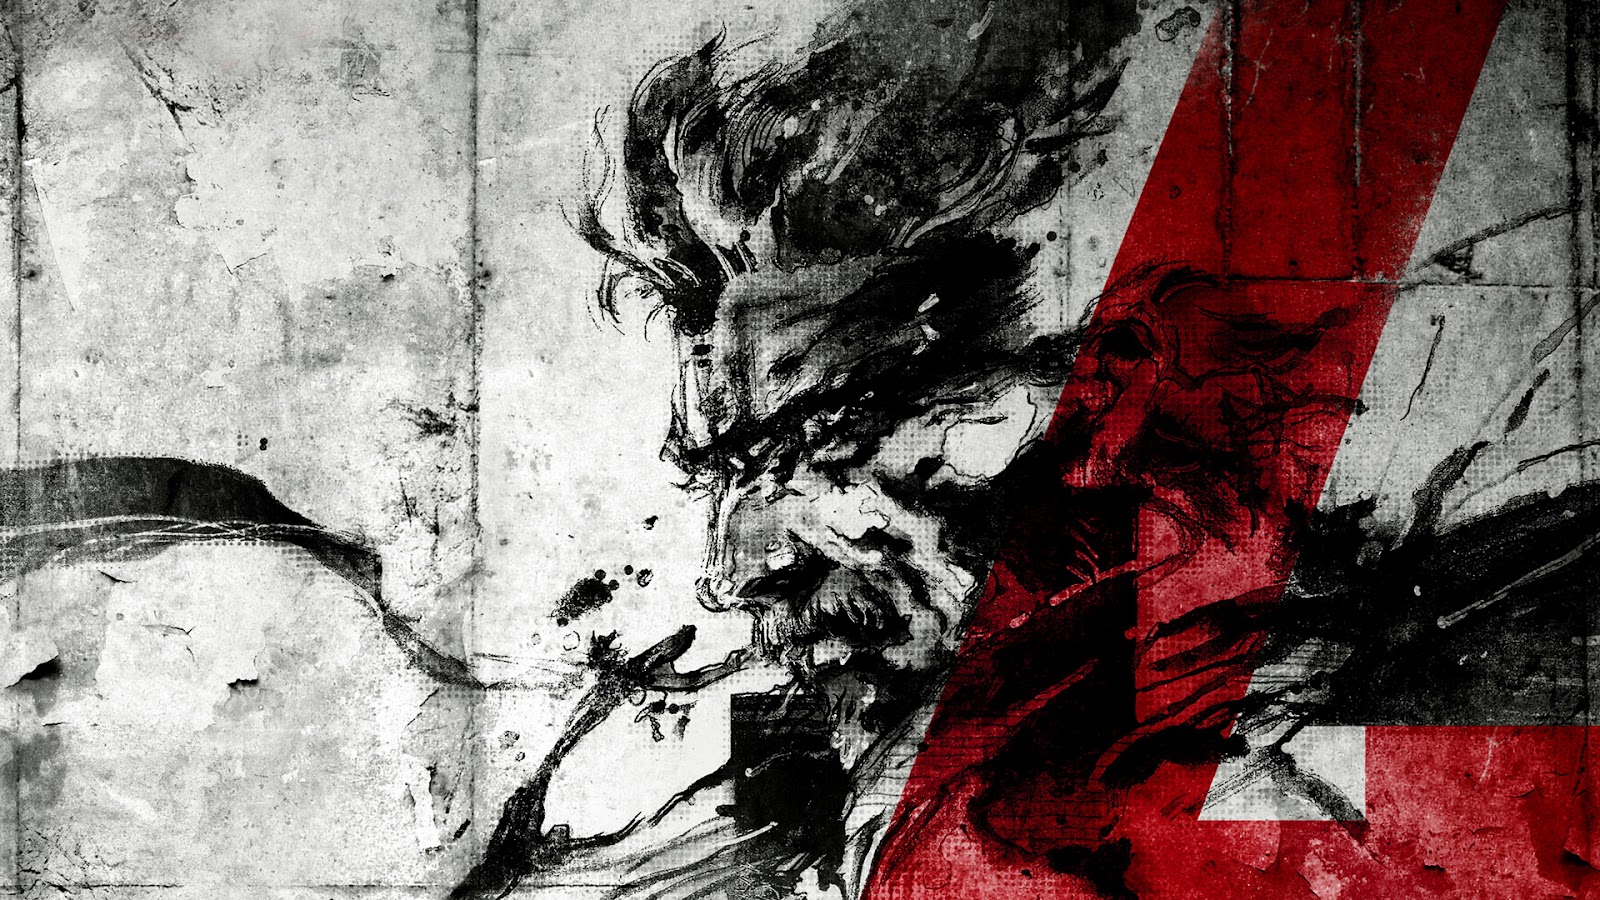 metal gear solid 4 art Metal Gear Solid 4: Guns of the Patriots Wallpapers in HD